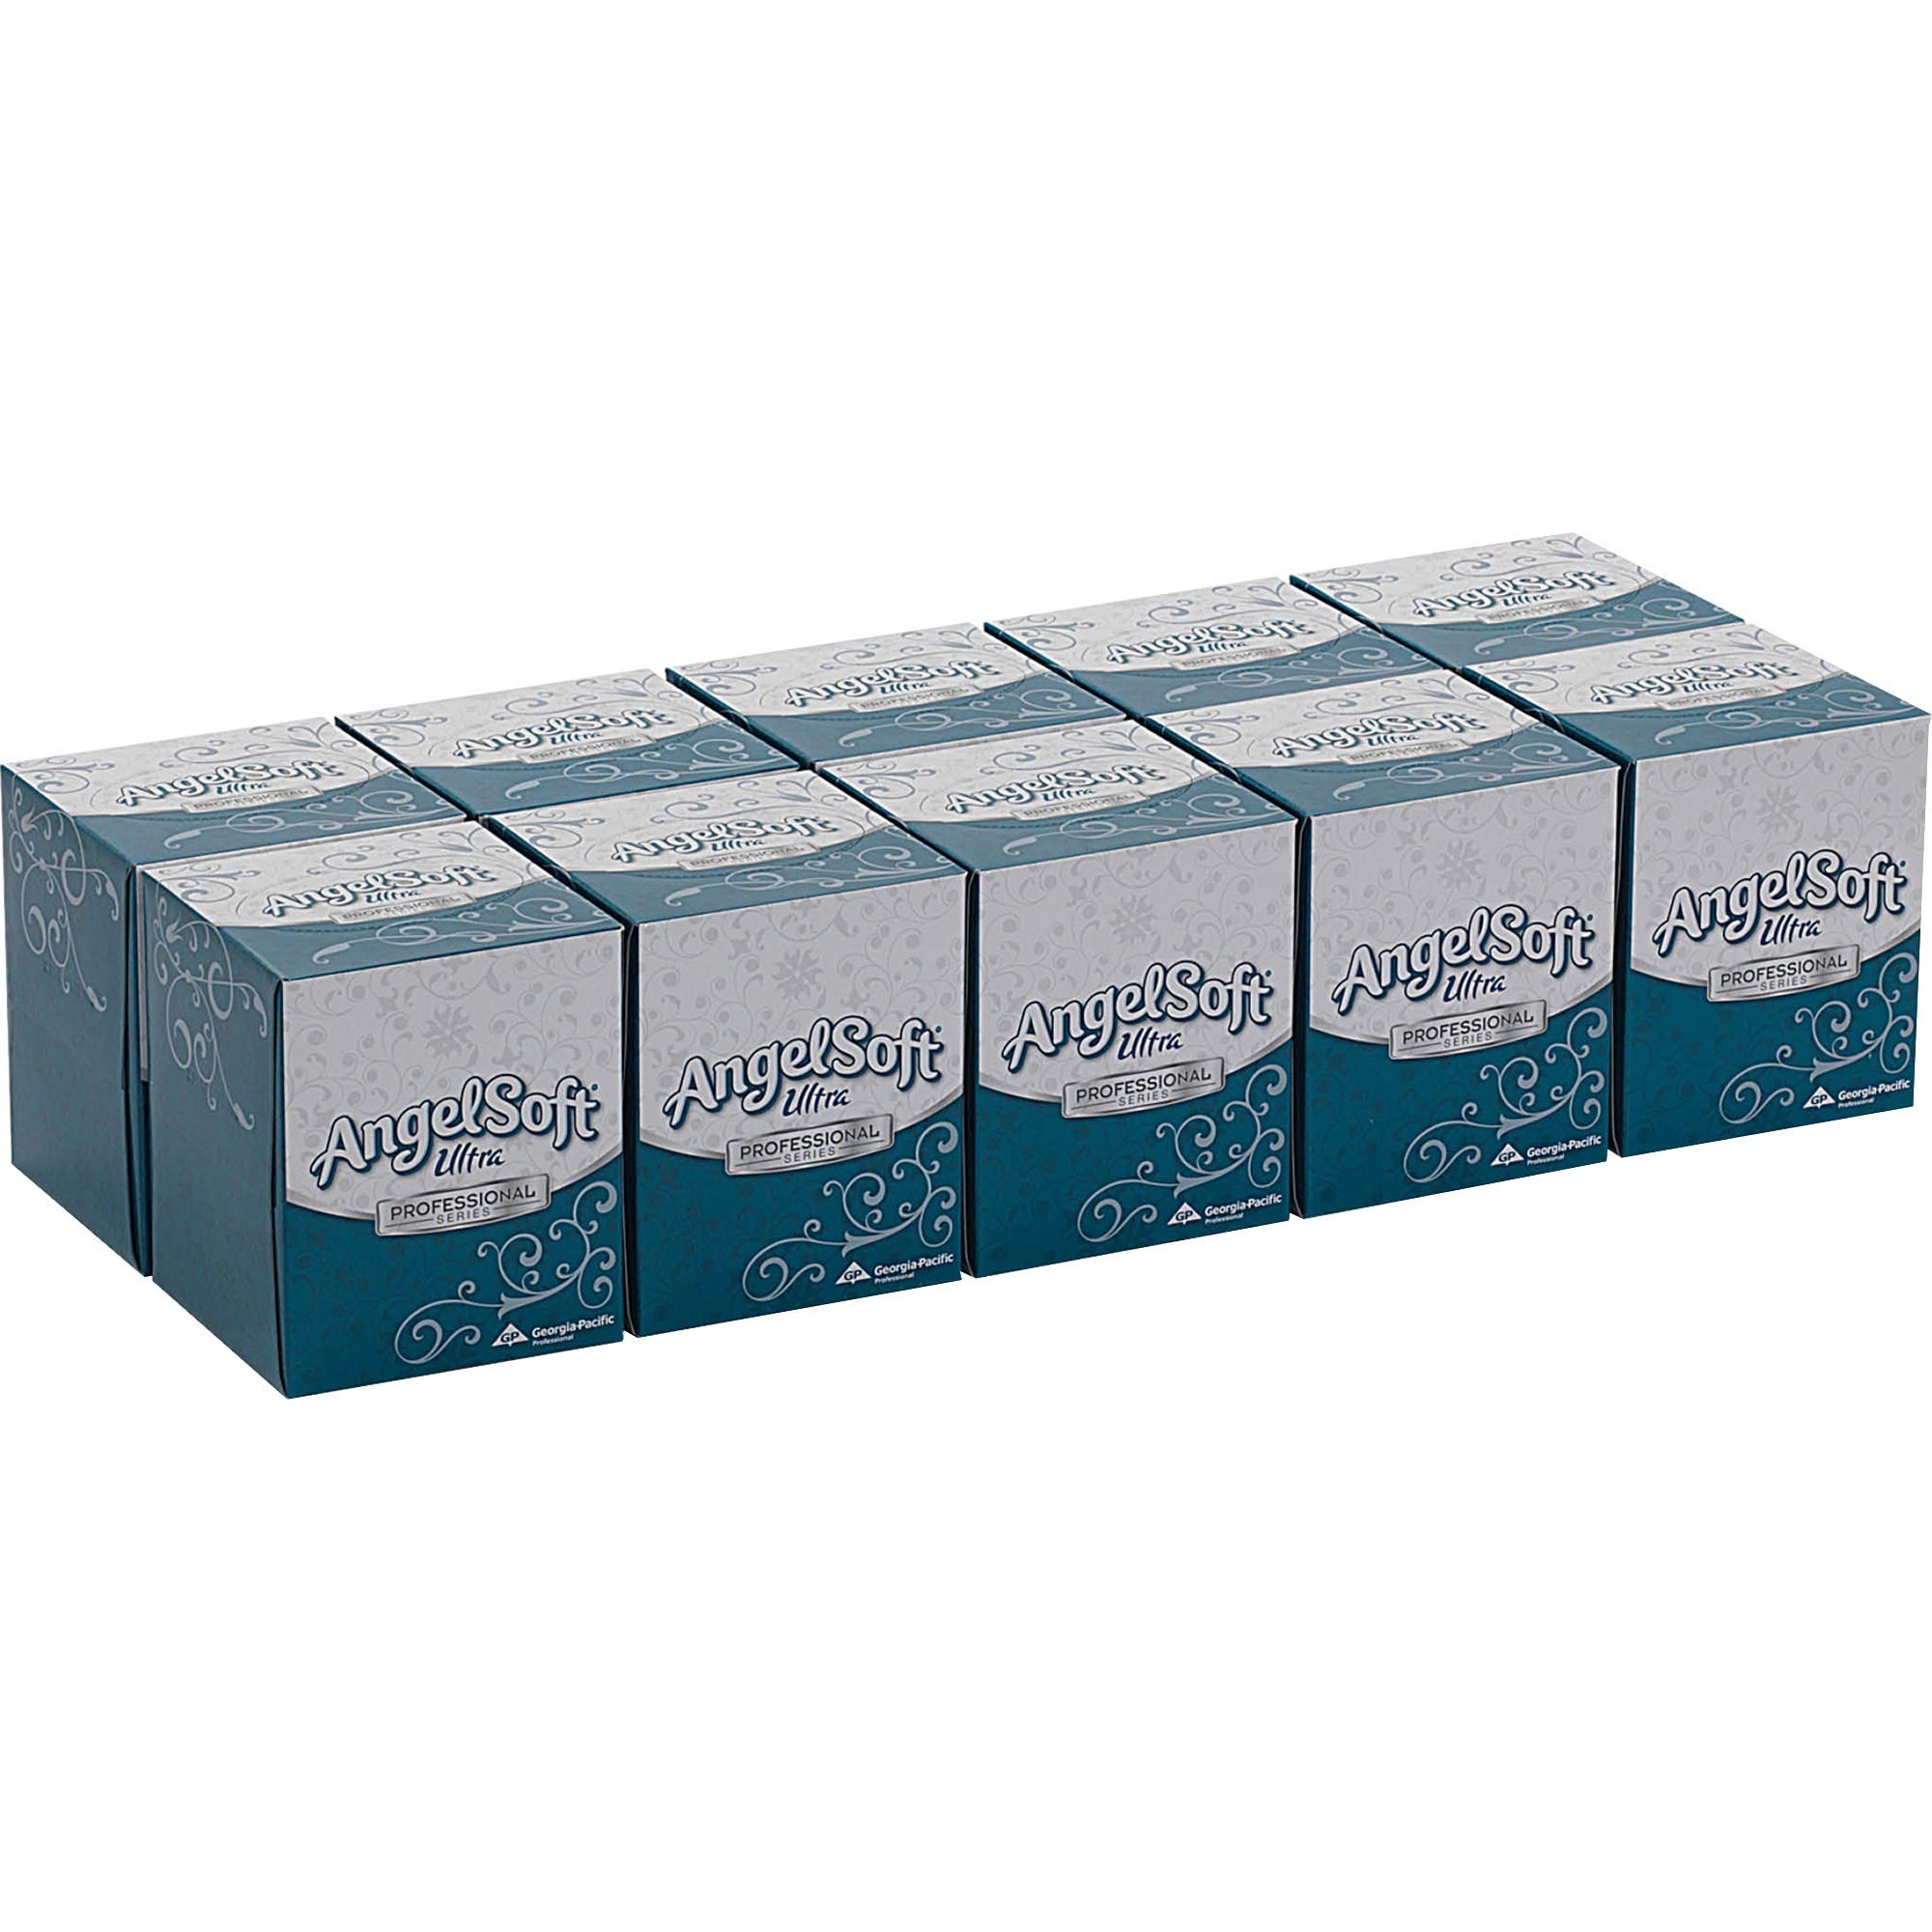 Angel Soft Ultra Professional Series, GPC4636014, Facial Tissue in Cube Box, 960 / Carton, White